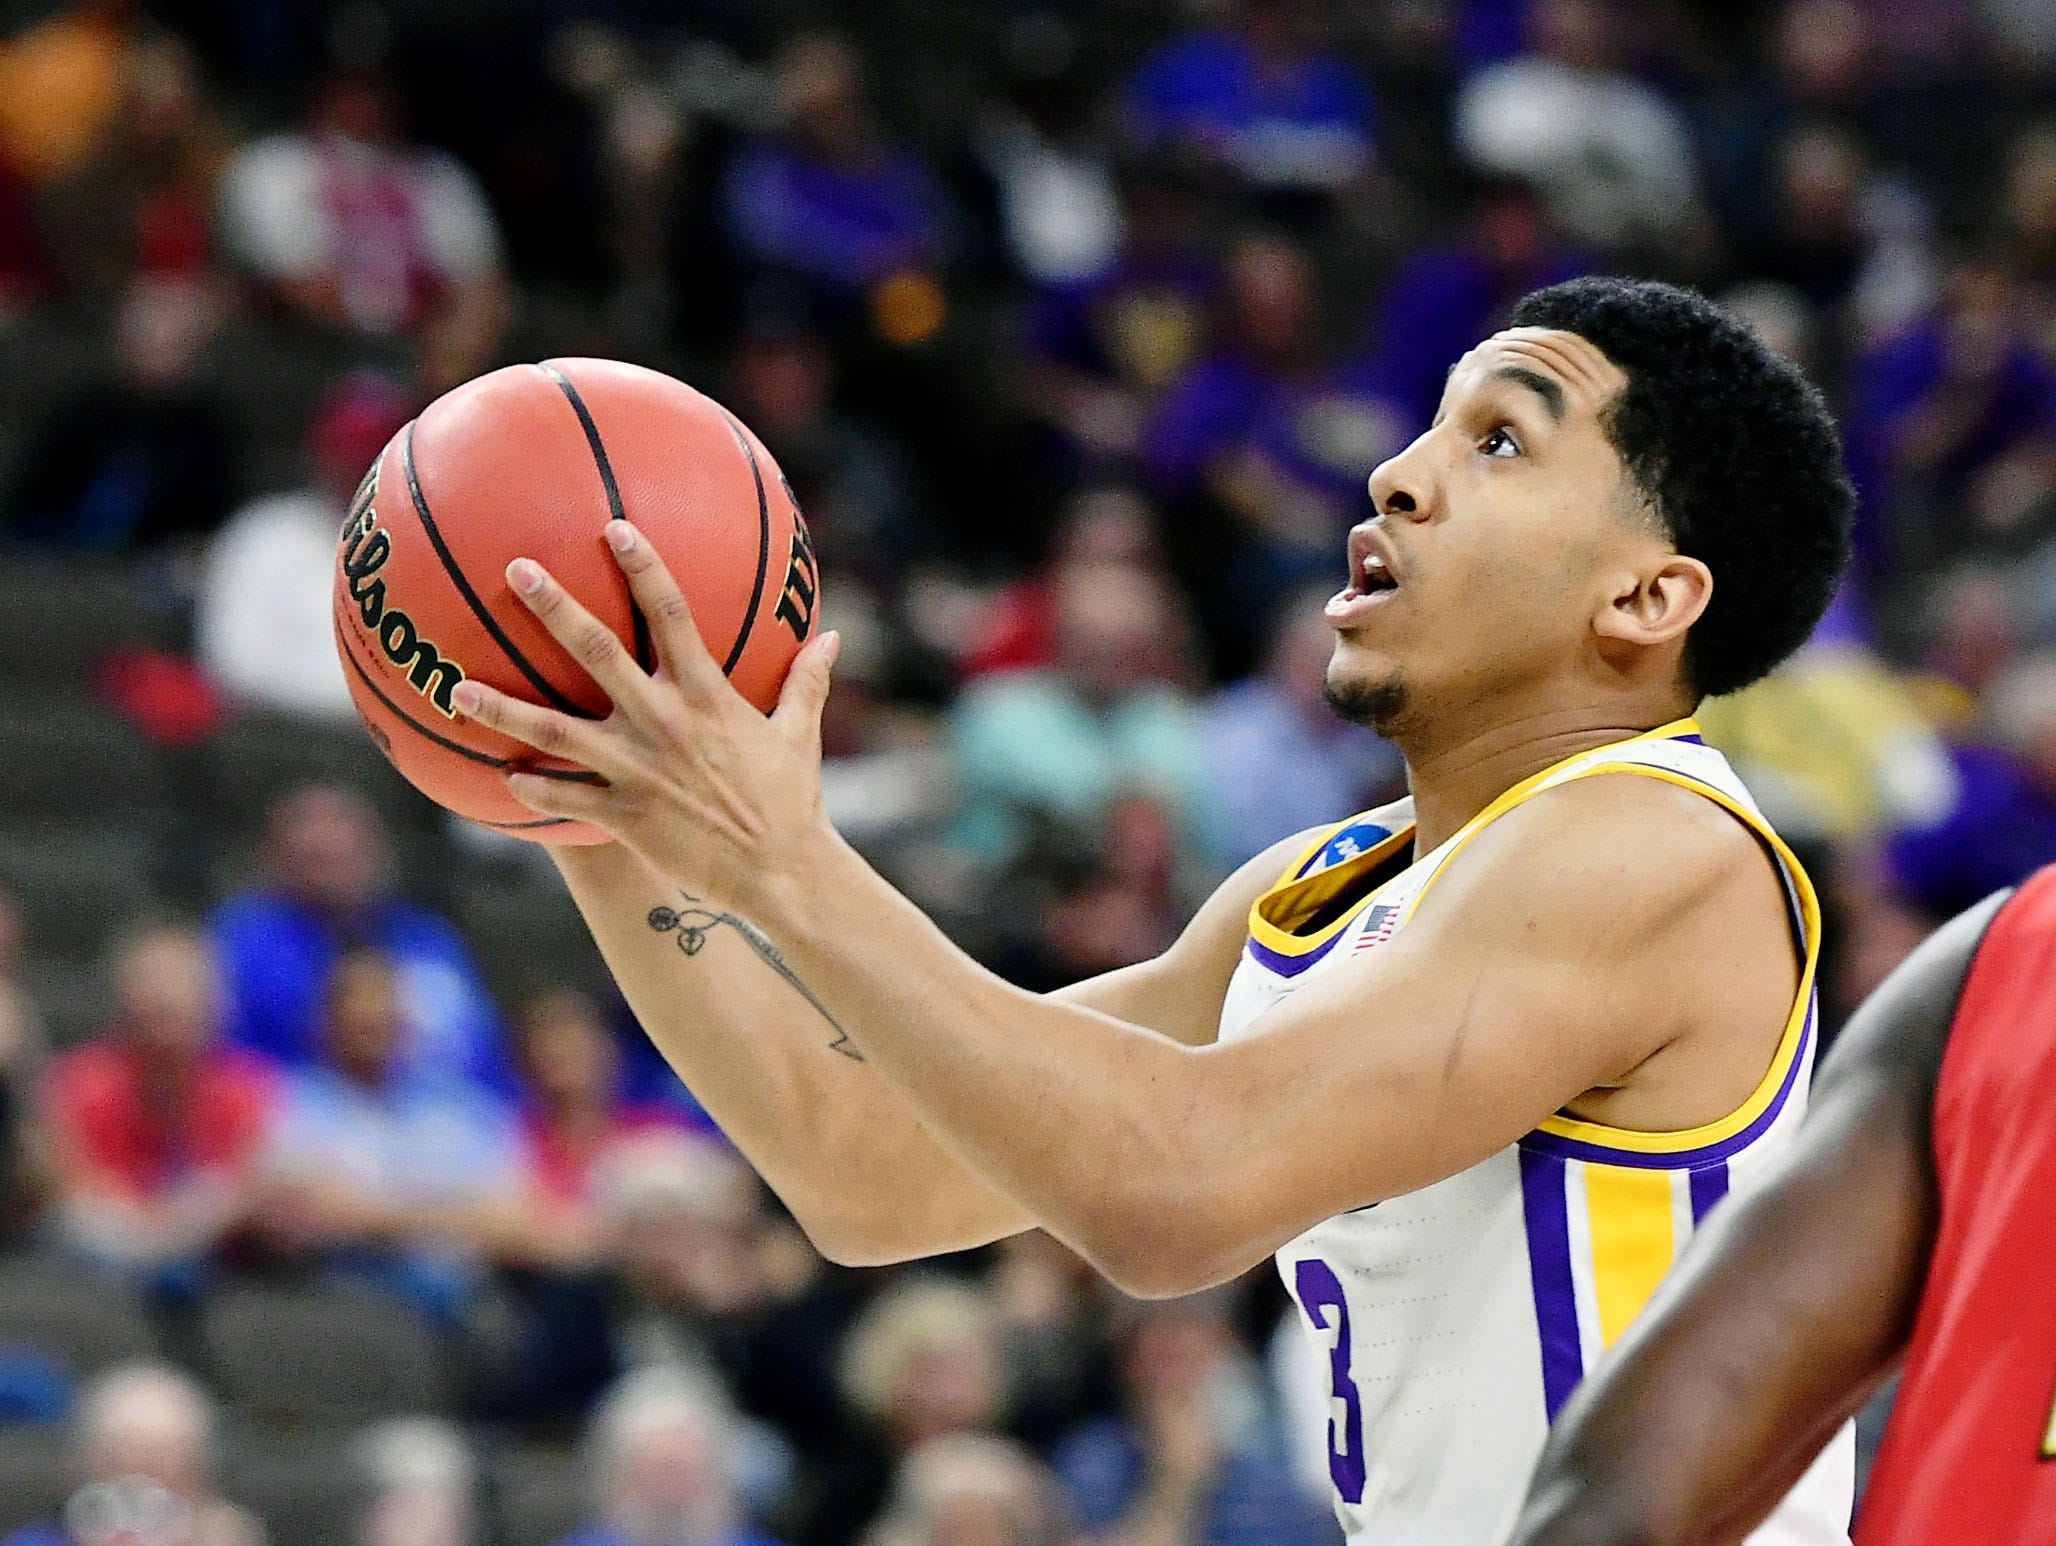 Mar 23, 2019; Jacksonville, FL, USA; LSU Tigers guard Tremont Waters (3) shoots against the Maryland Terrapins during the first half in the second round of the 2019 NCAA Tournament at Jacksonville Veterans Memorial Arena. Mandatory Credit: John David Mercer-USA TODAY Sports